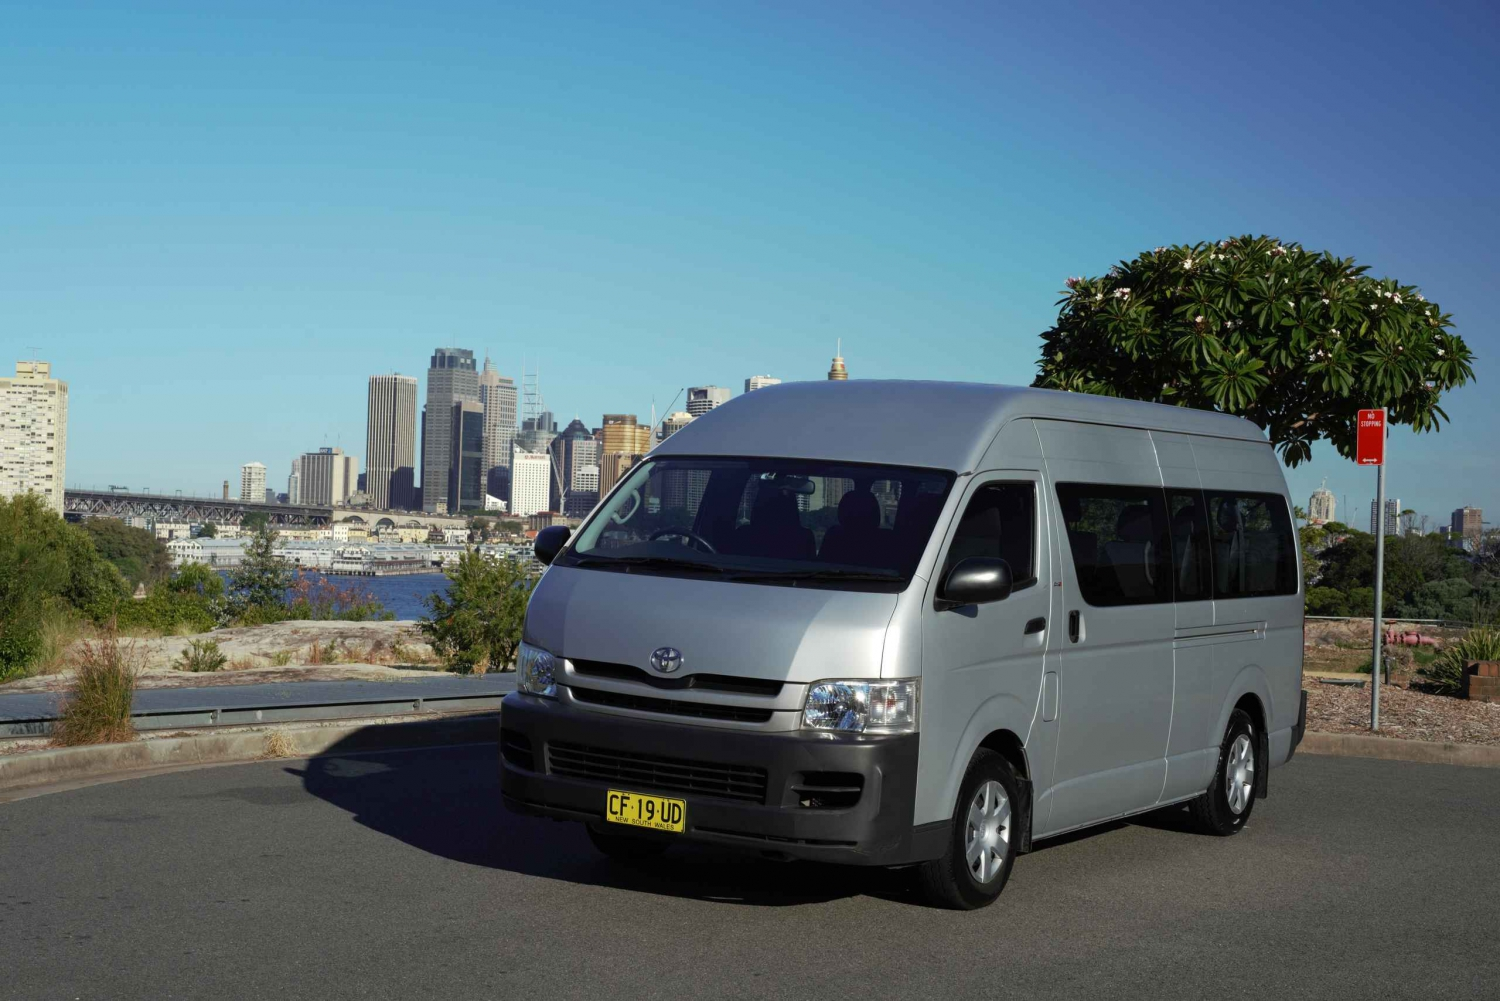 Central Hotels to Airport Shuttle Transfer